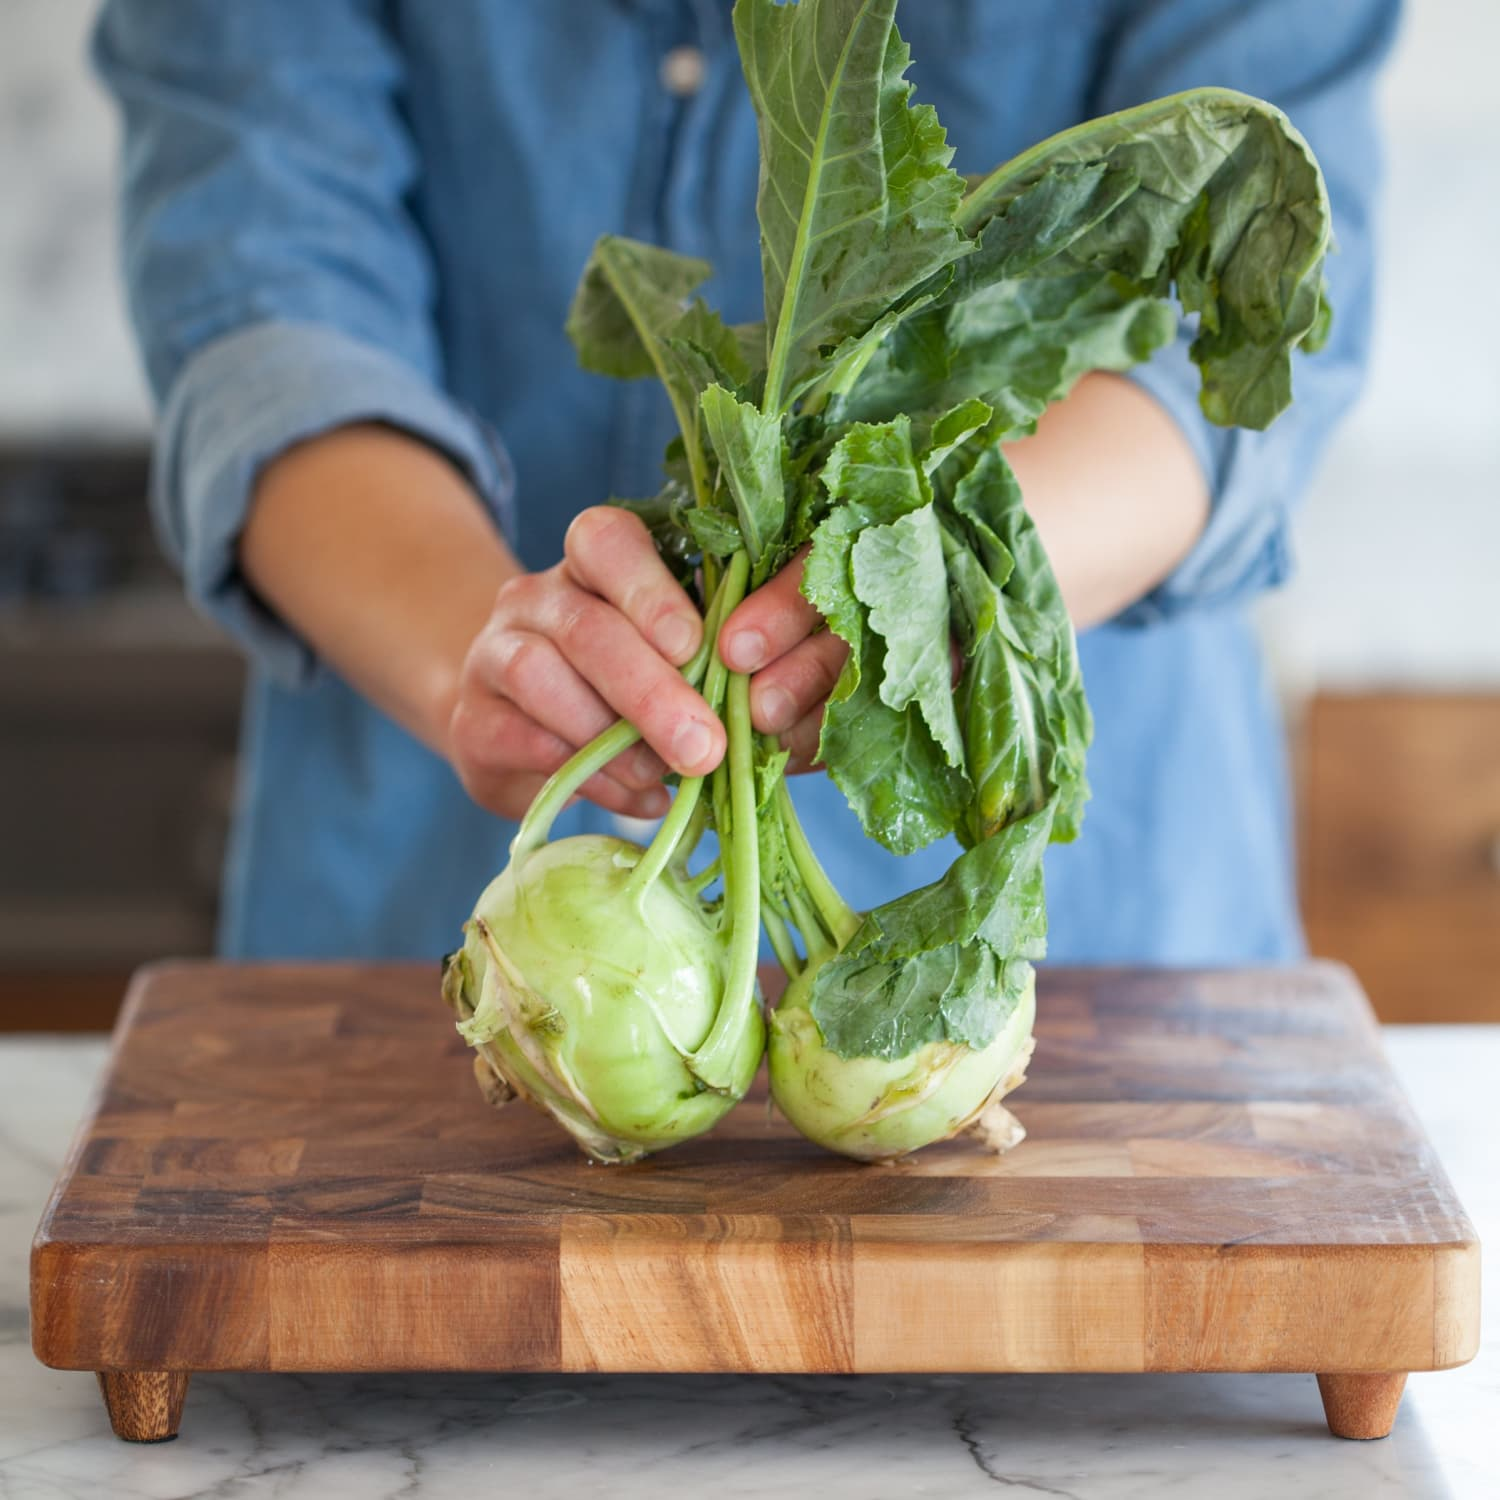 How To Cut Up Kohlrabi Kitchn